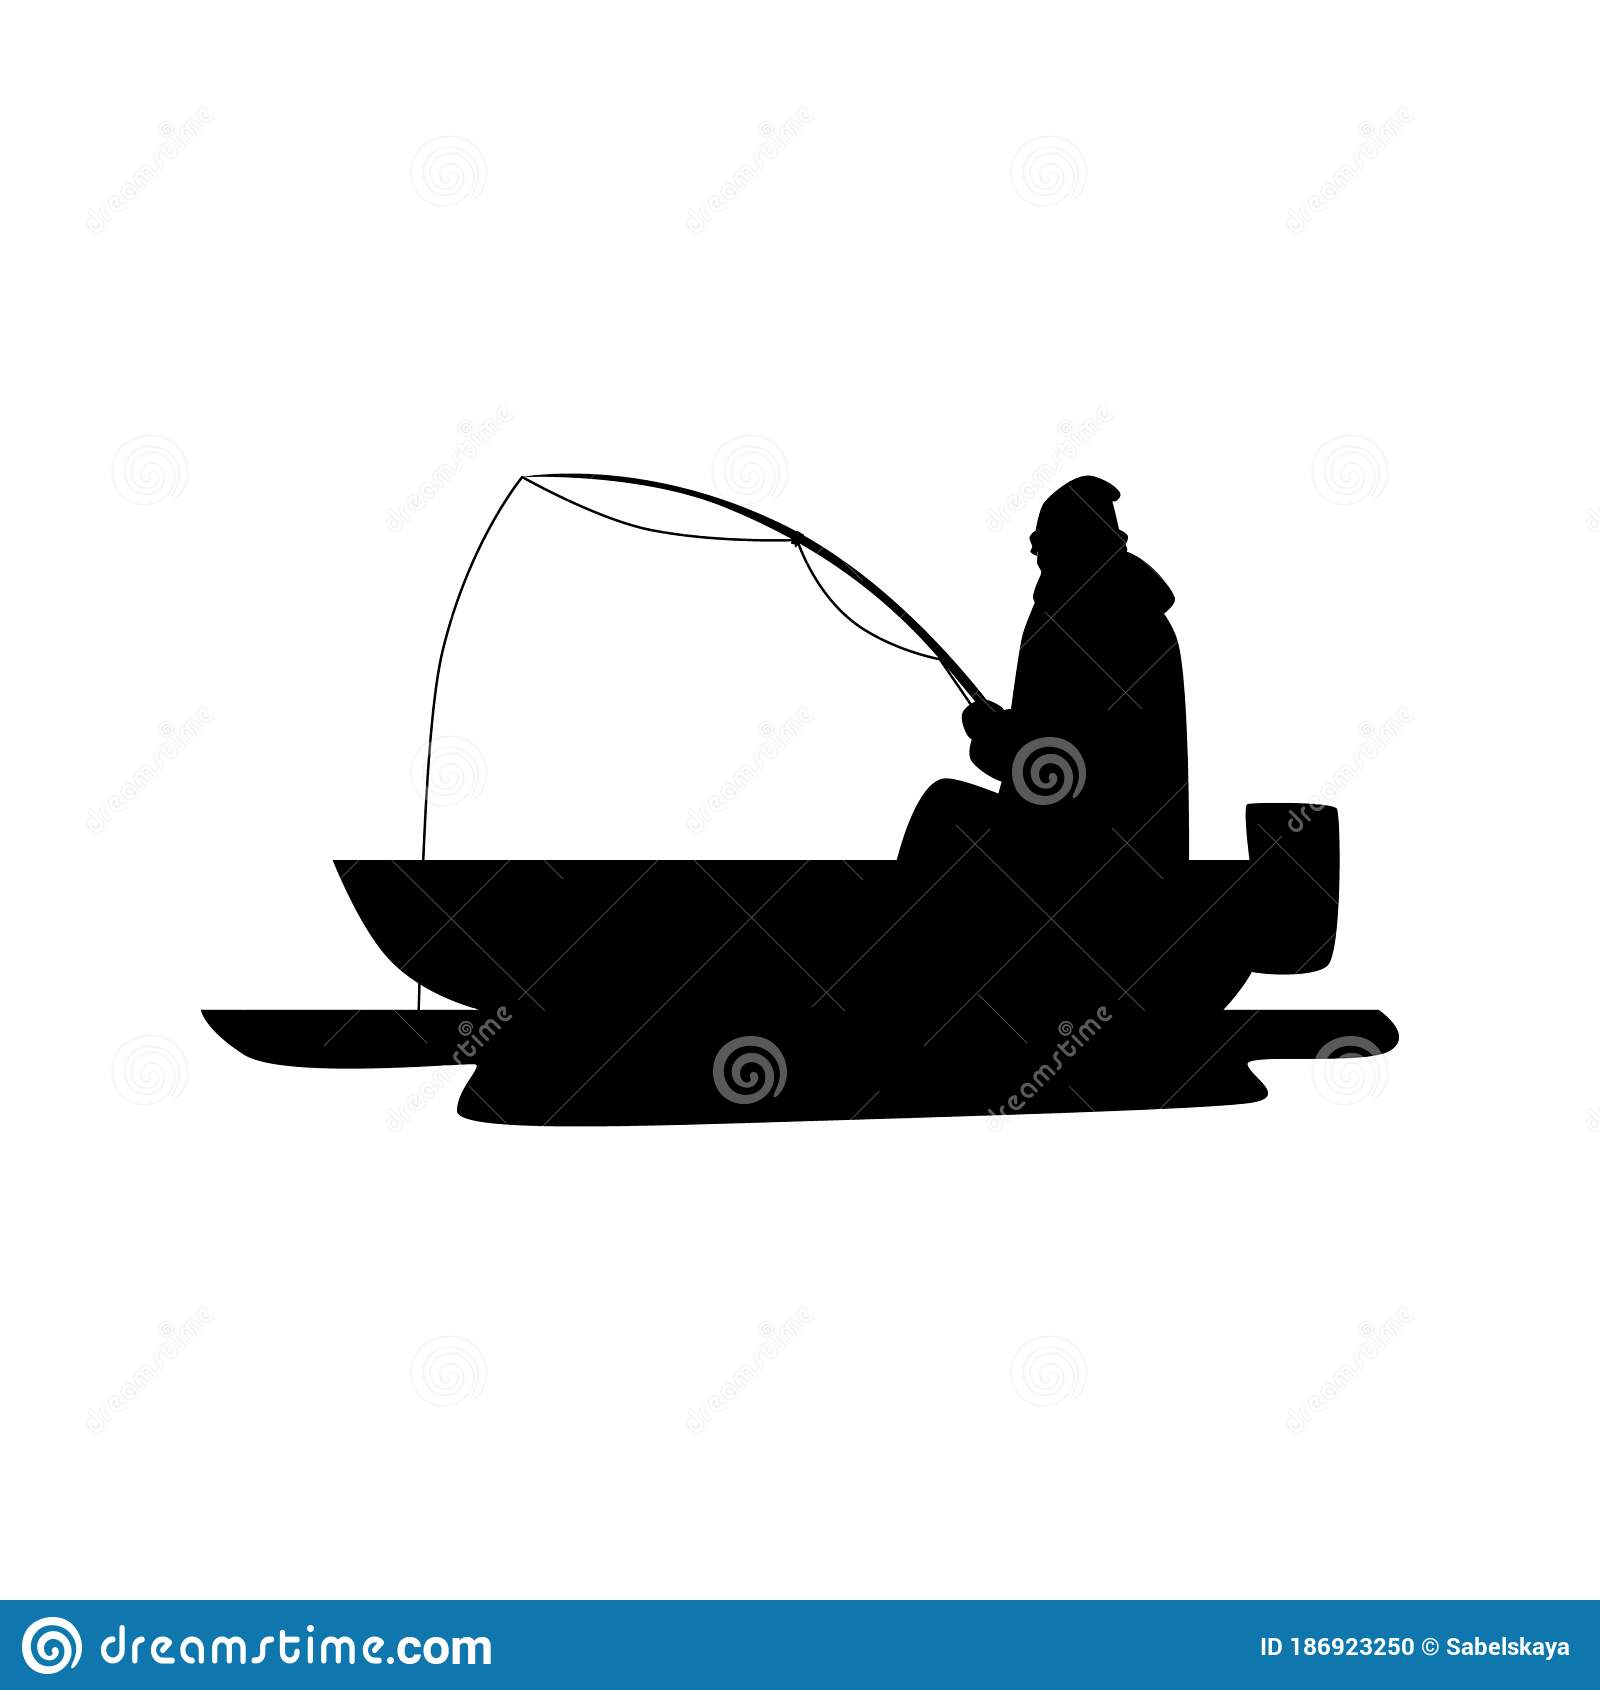 Download Silhouette Man Fishing Boat Stock Illustrations 1 141 Silhouette Man Fishing Boat Stock Illustrations Vectors Clipart Dreamstime